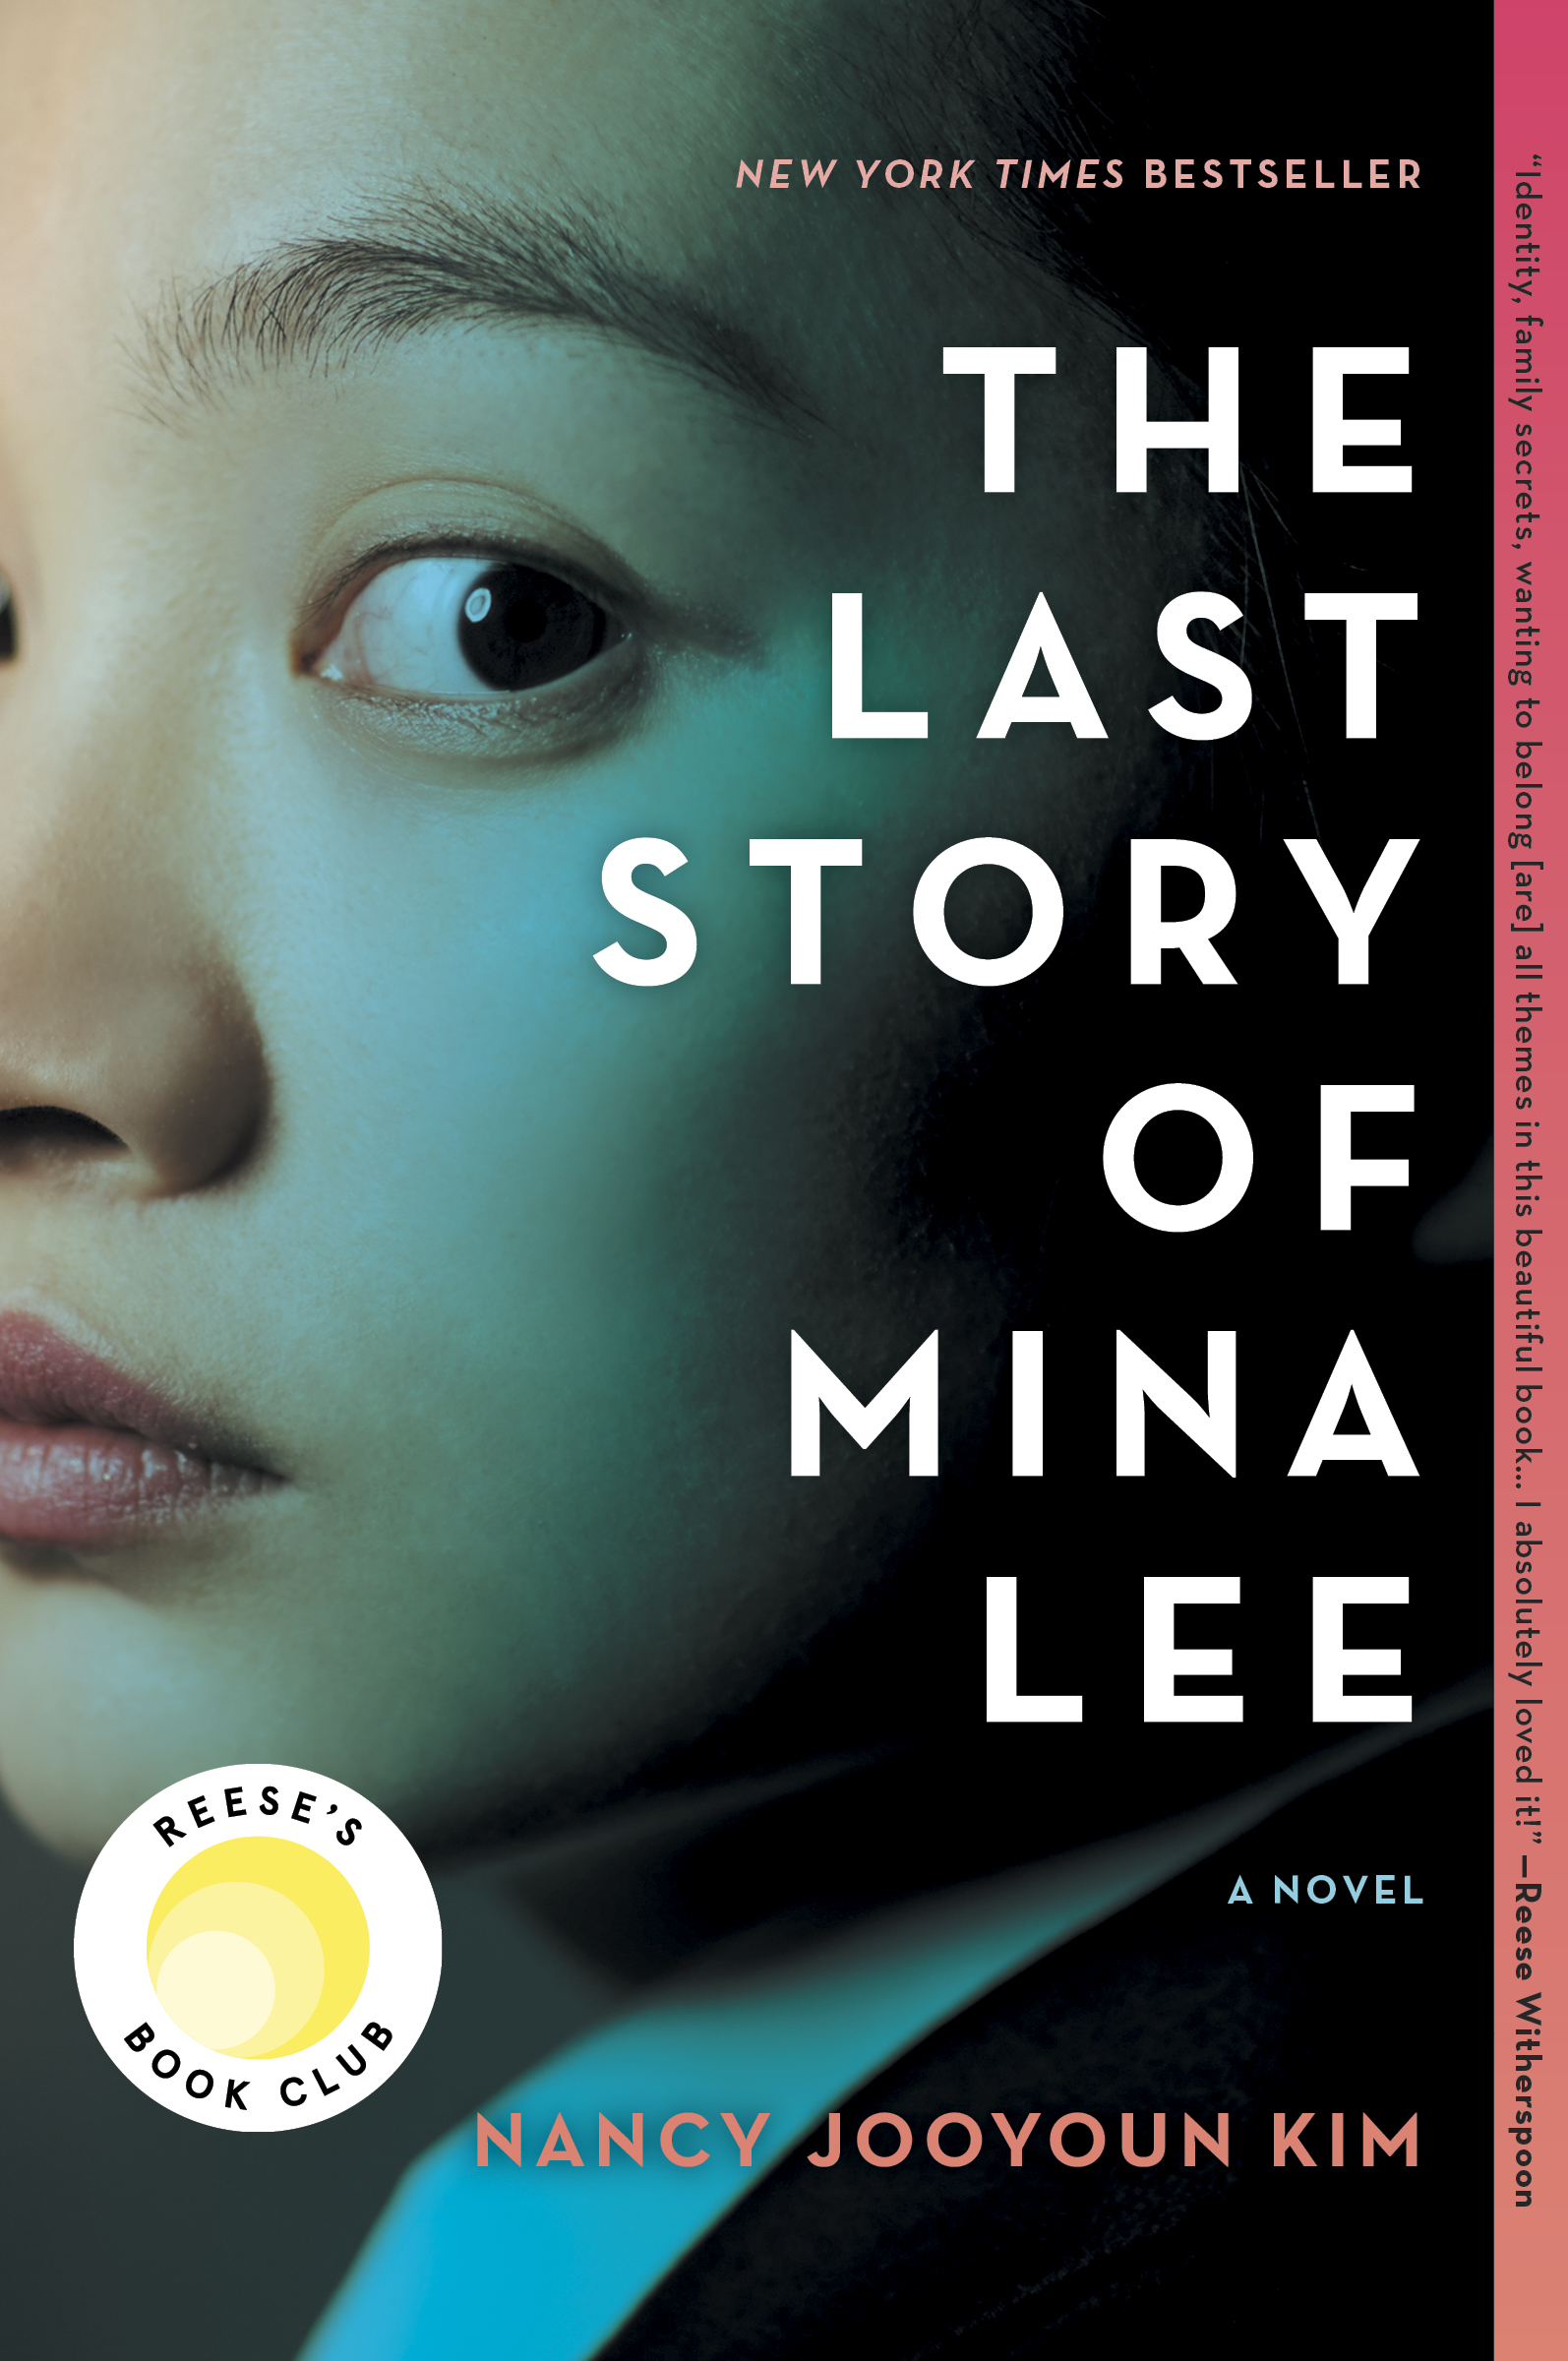 The Last Story of Mina Lee A Novel